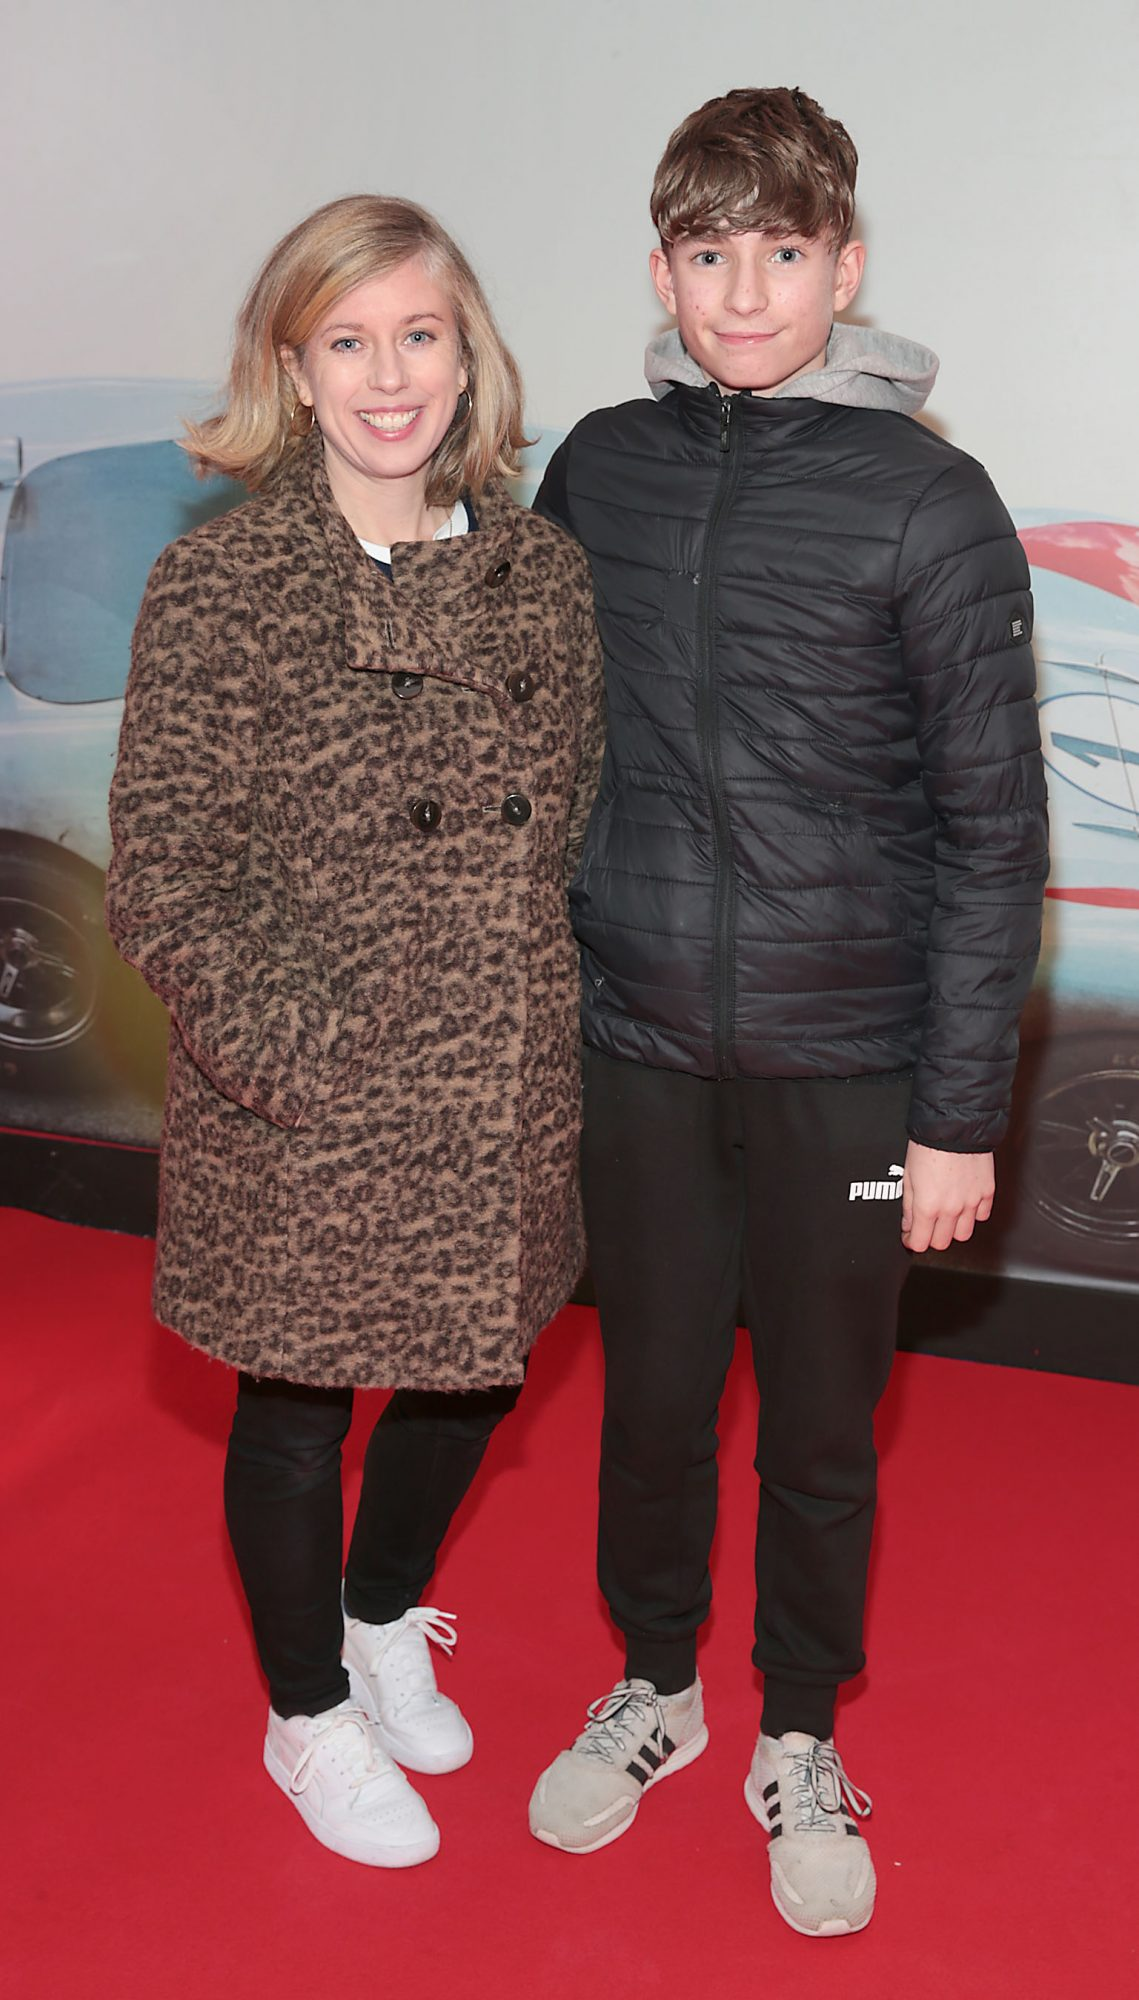 Lesley Conroy and Billy Conroy Roche pictured at the special preview screening of Le Mans '66 at Cineworld, Dublin. Photo: Brian McEvoy.